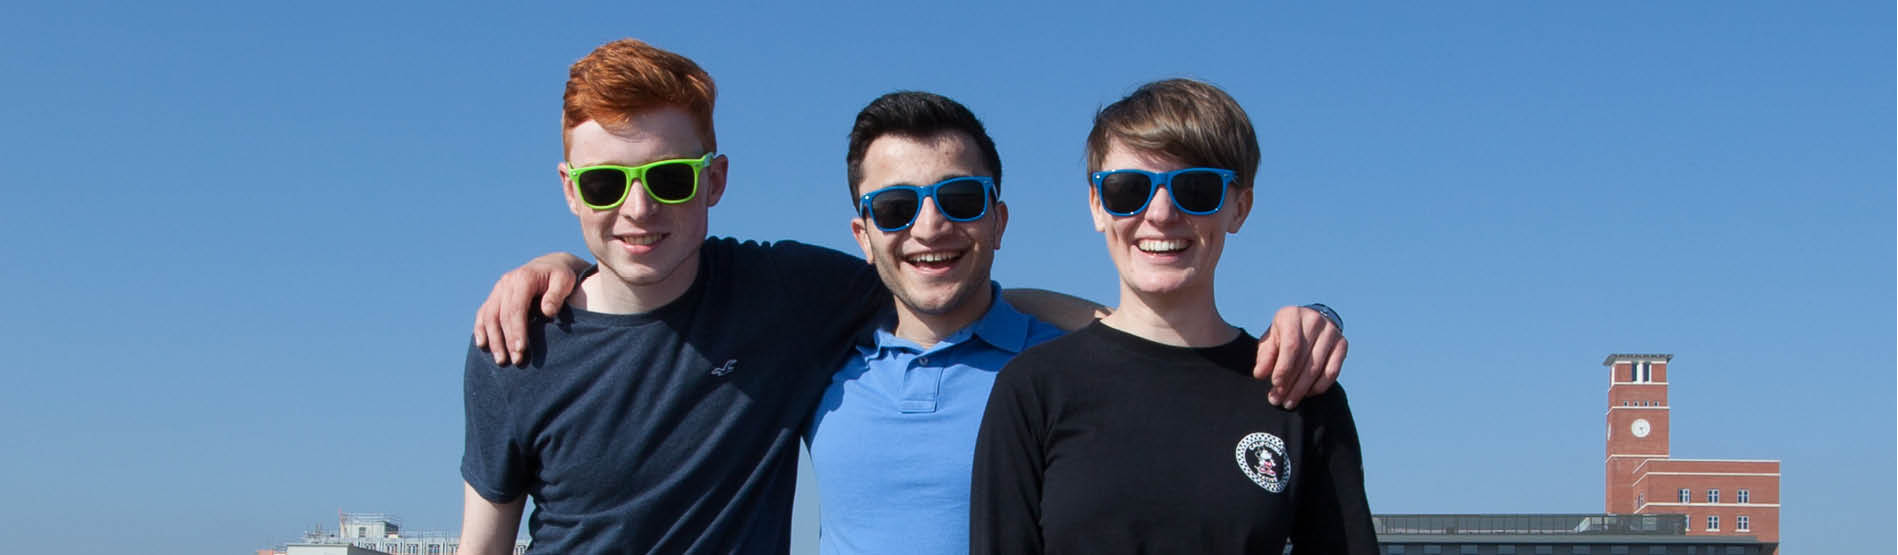 group of students smiling with sunglasses on